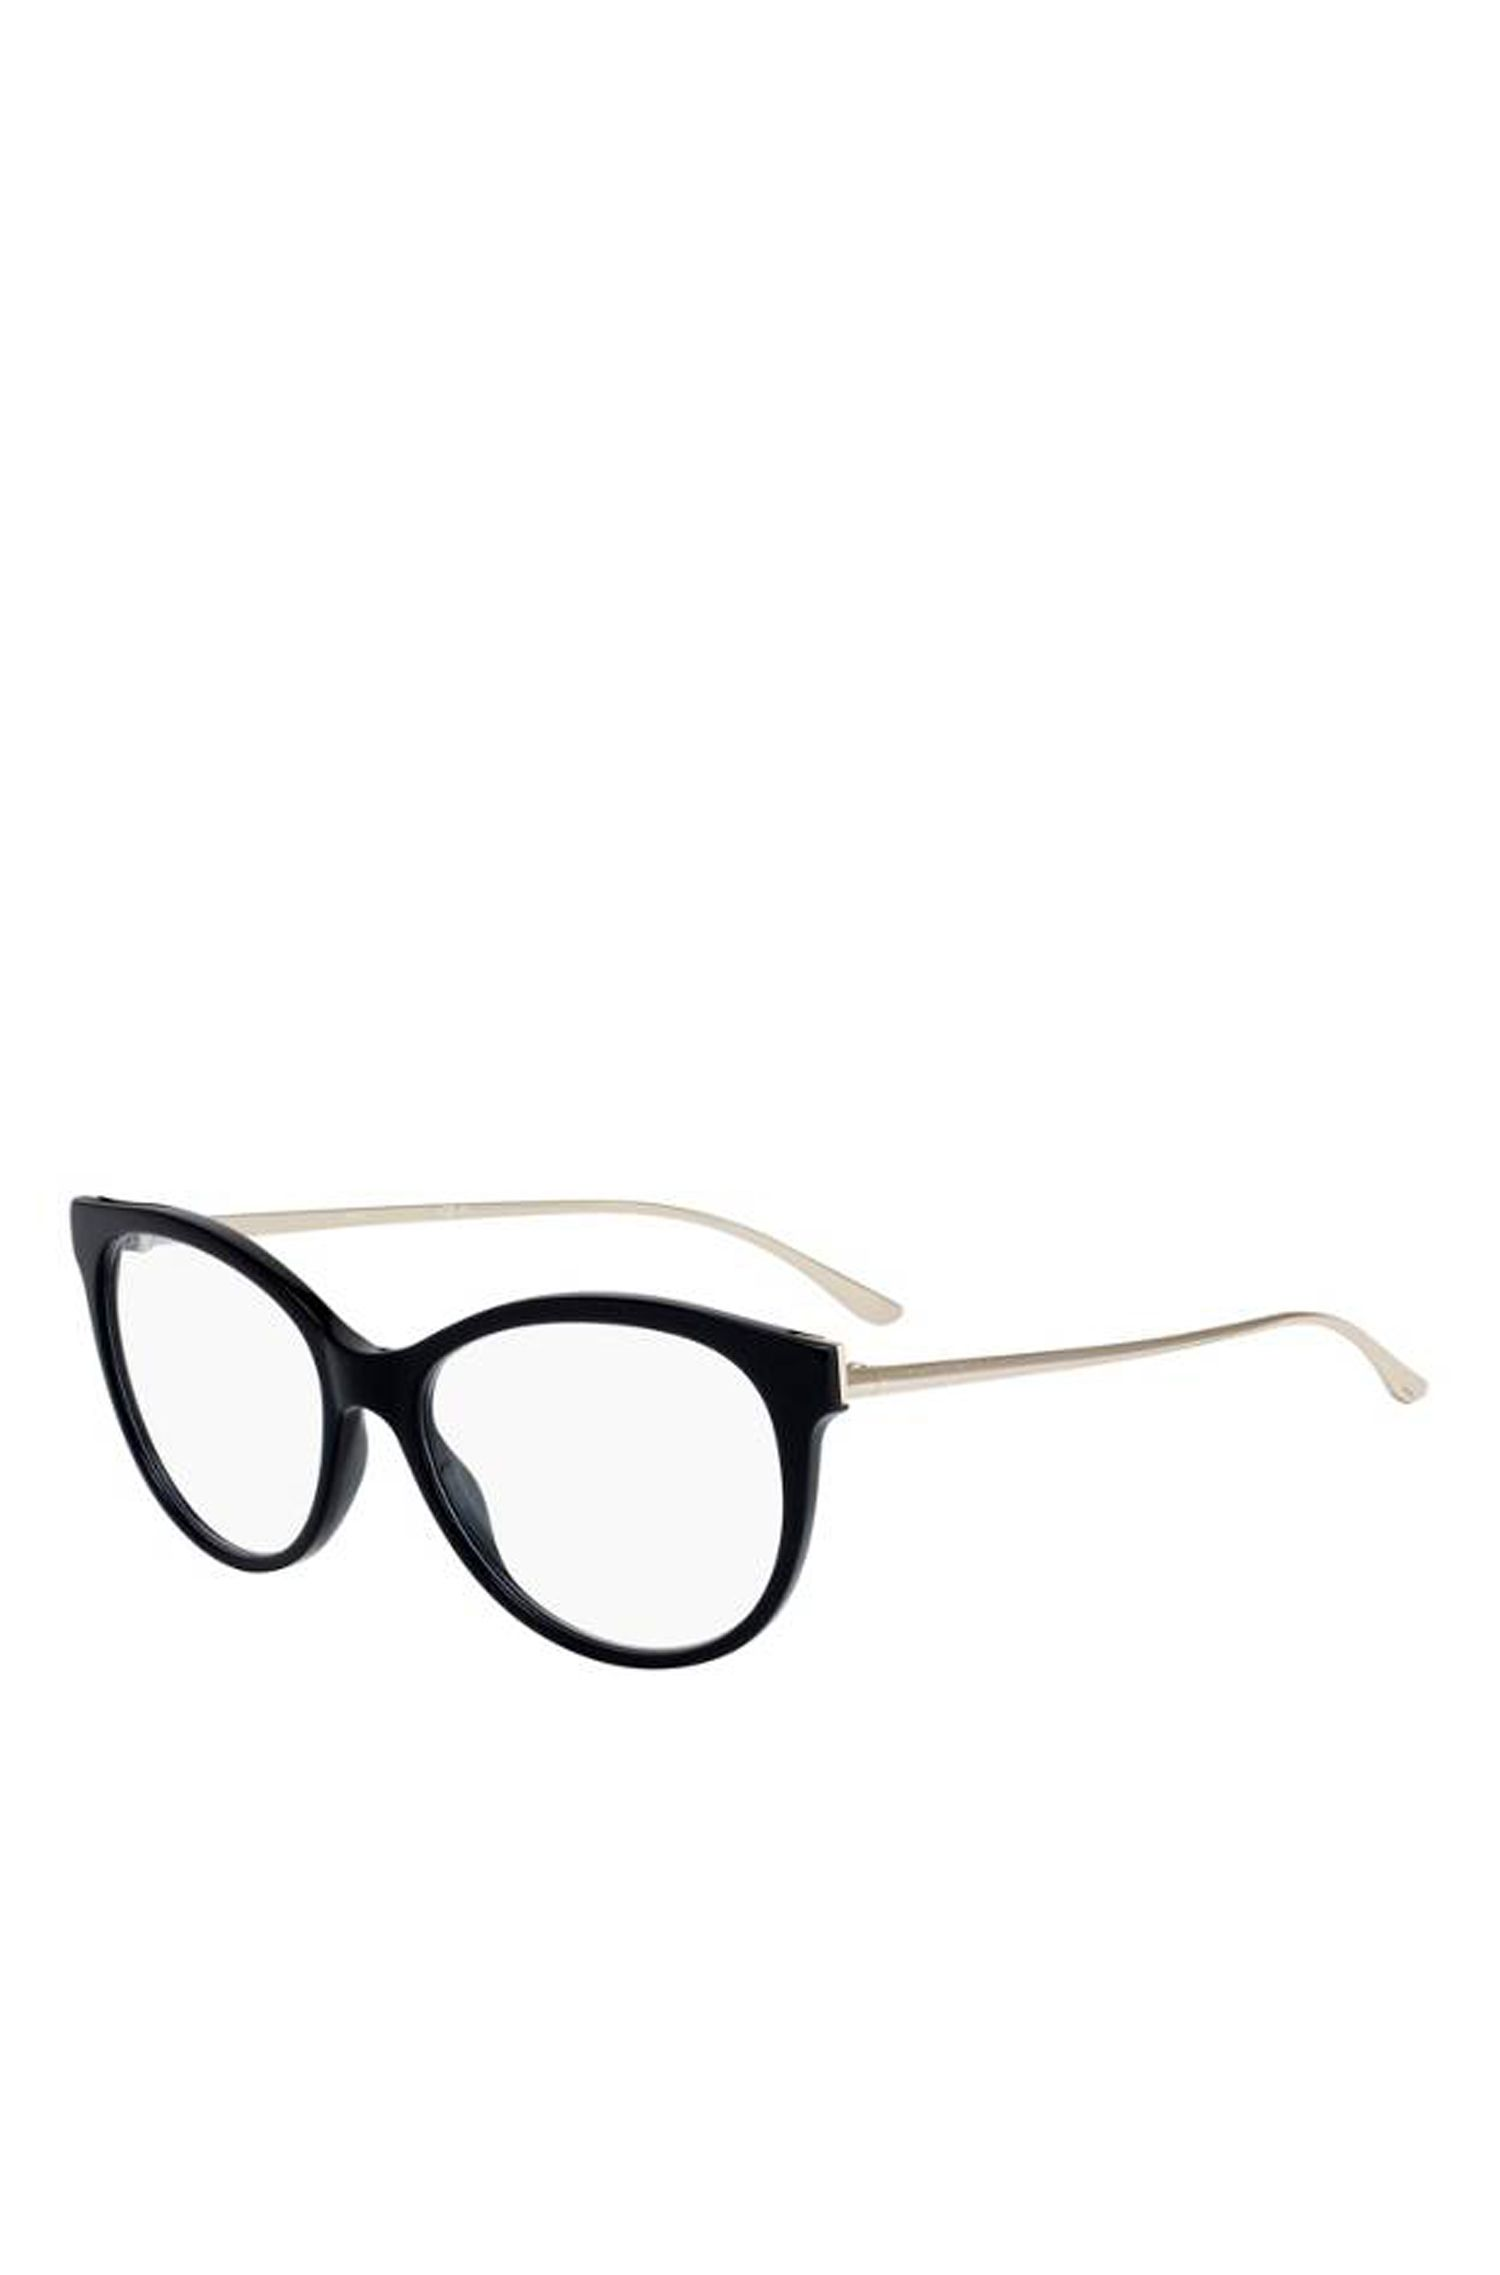 Black Acetate Cat-Eye Optical Frames | BOSS 0894 RHP